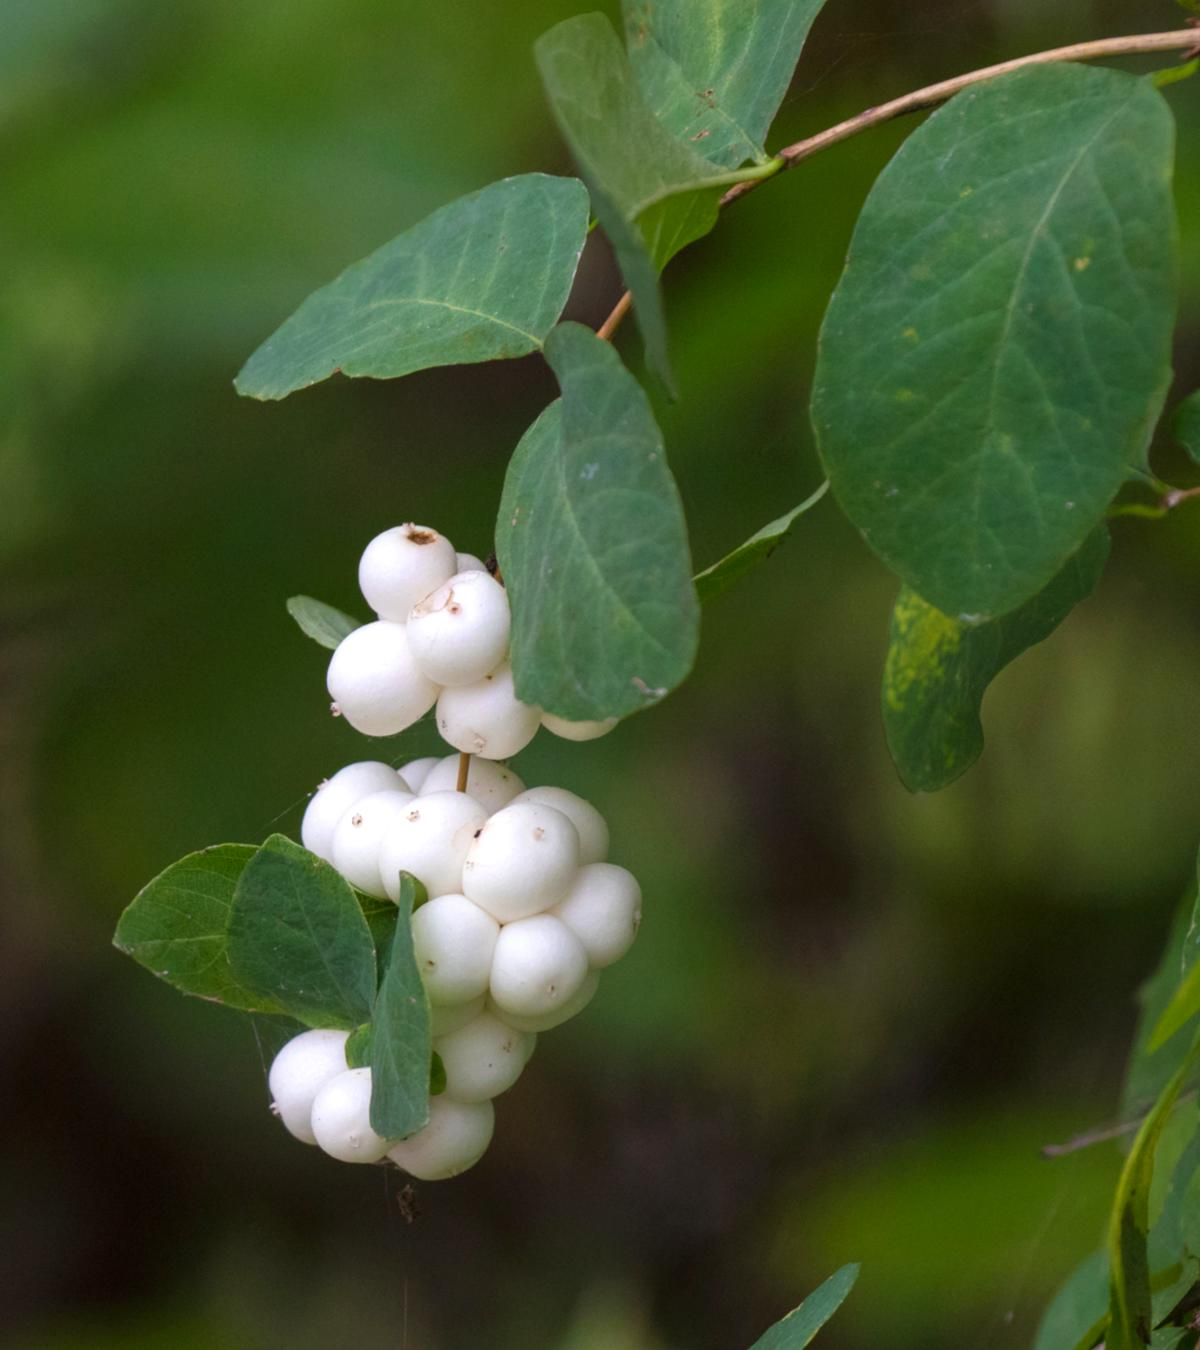 Snowberry, the pearl tree